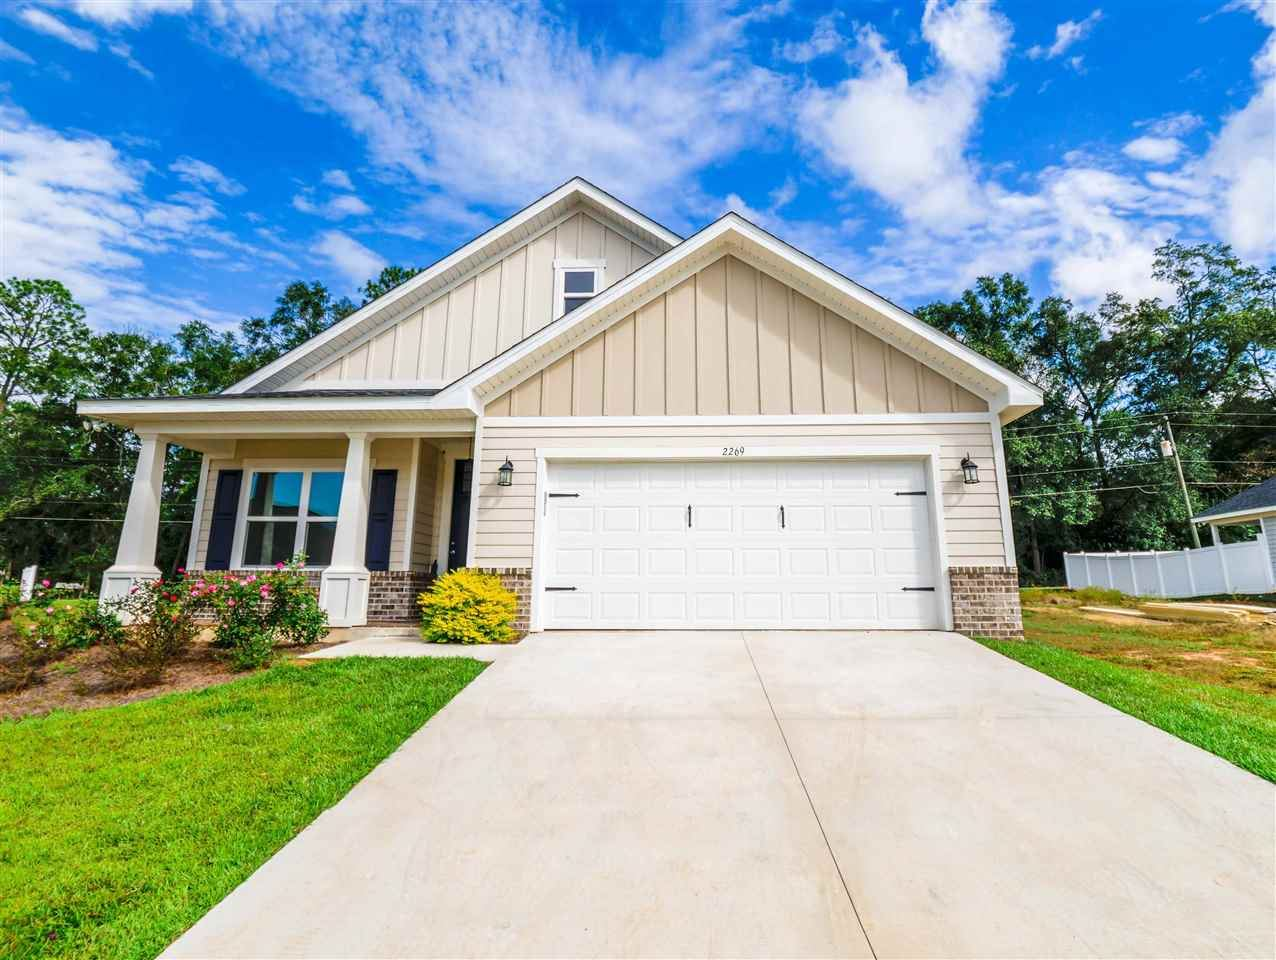 2273 Lexington Parc Drive, Tallahassee, FL 32311 - MLS#: 327006